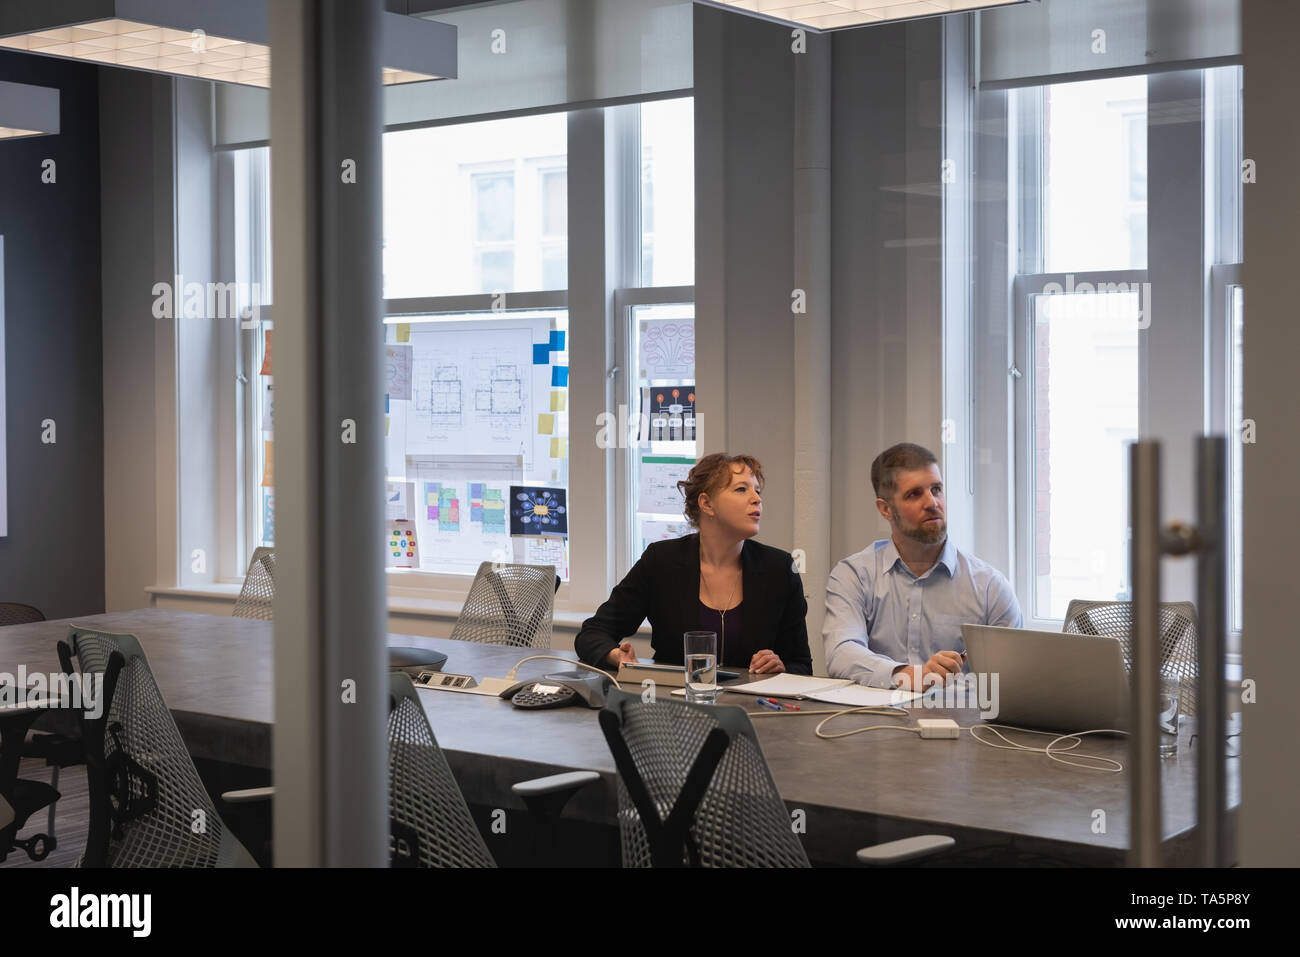 Two business people listening in a conference room Stock Photo